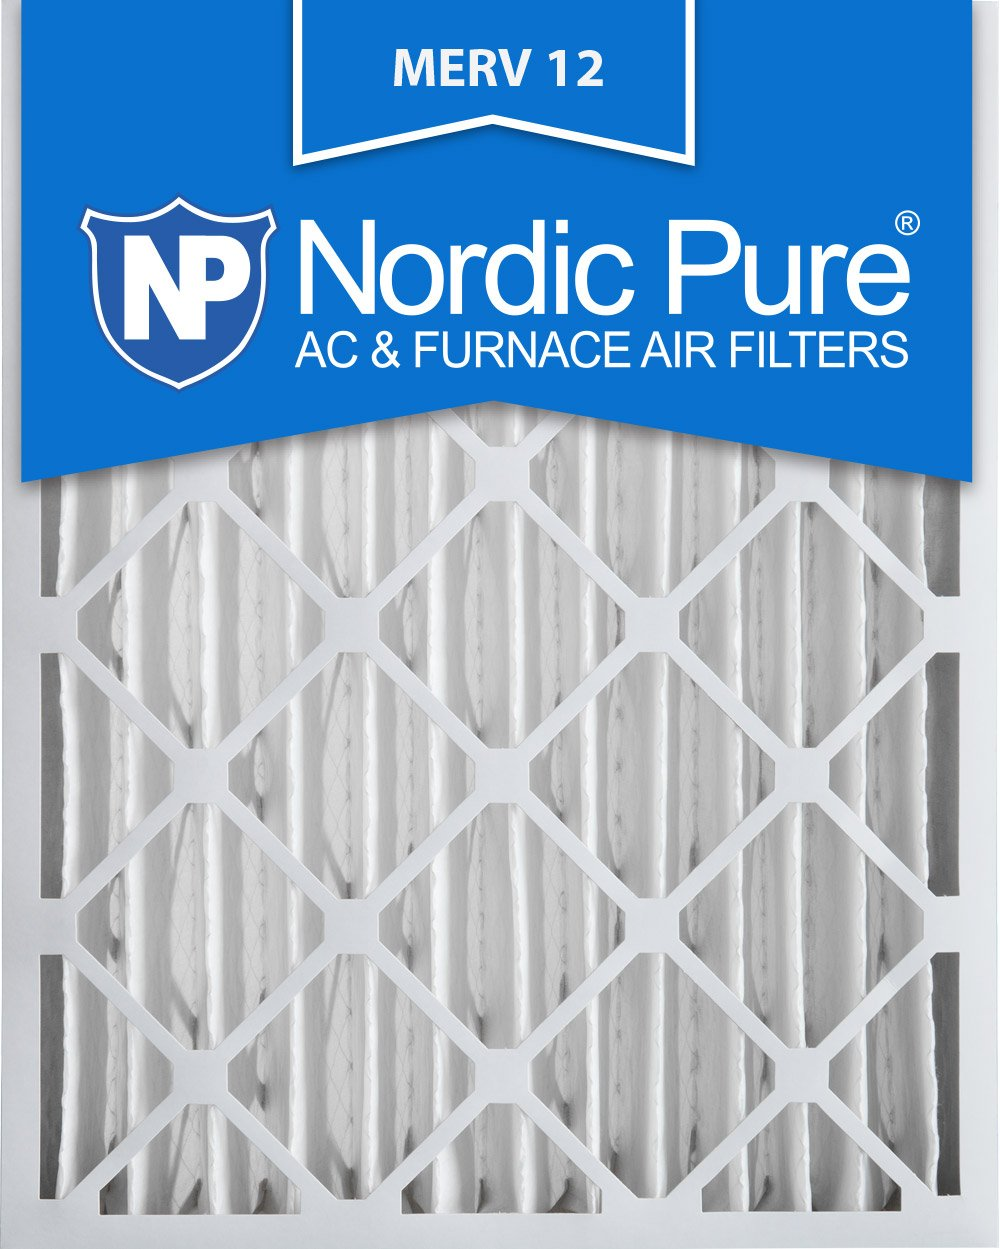 Nordic Pure 20x25x4 (3-5/8 Actual Depth) MERV 12 Pleated AC Furnace Air Filter, Box of 1